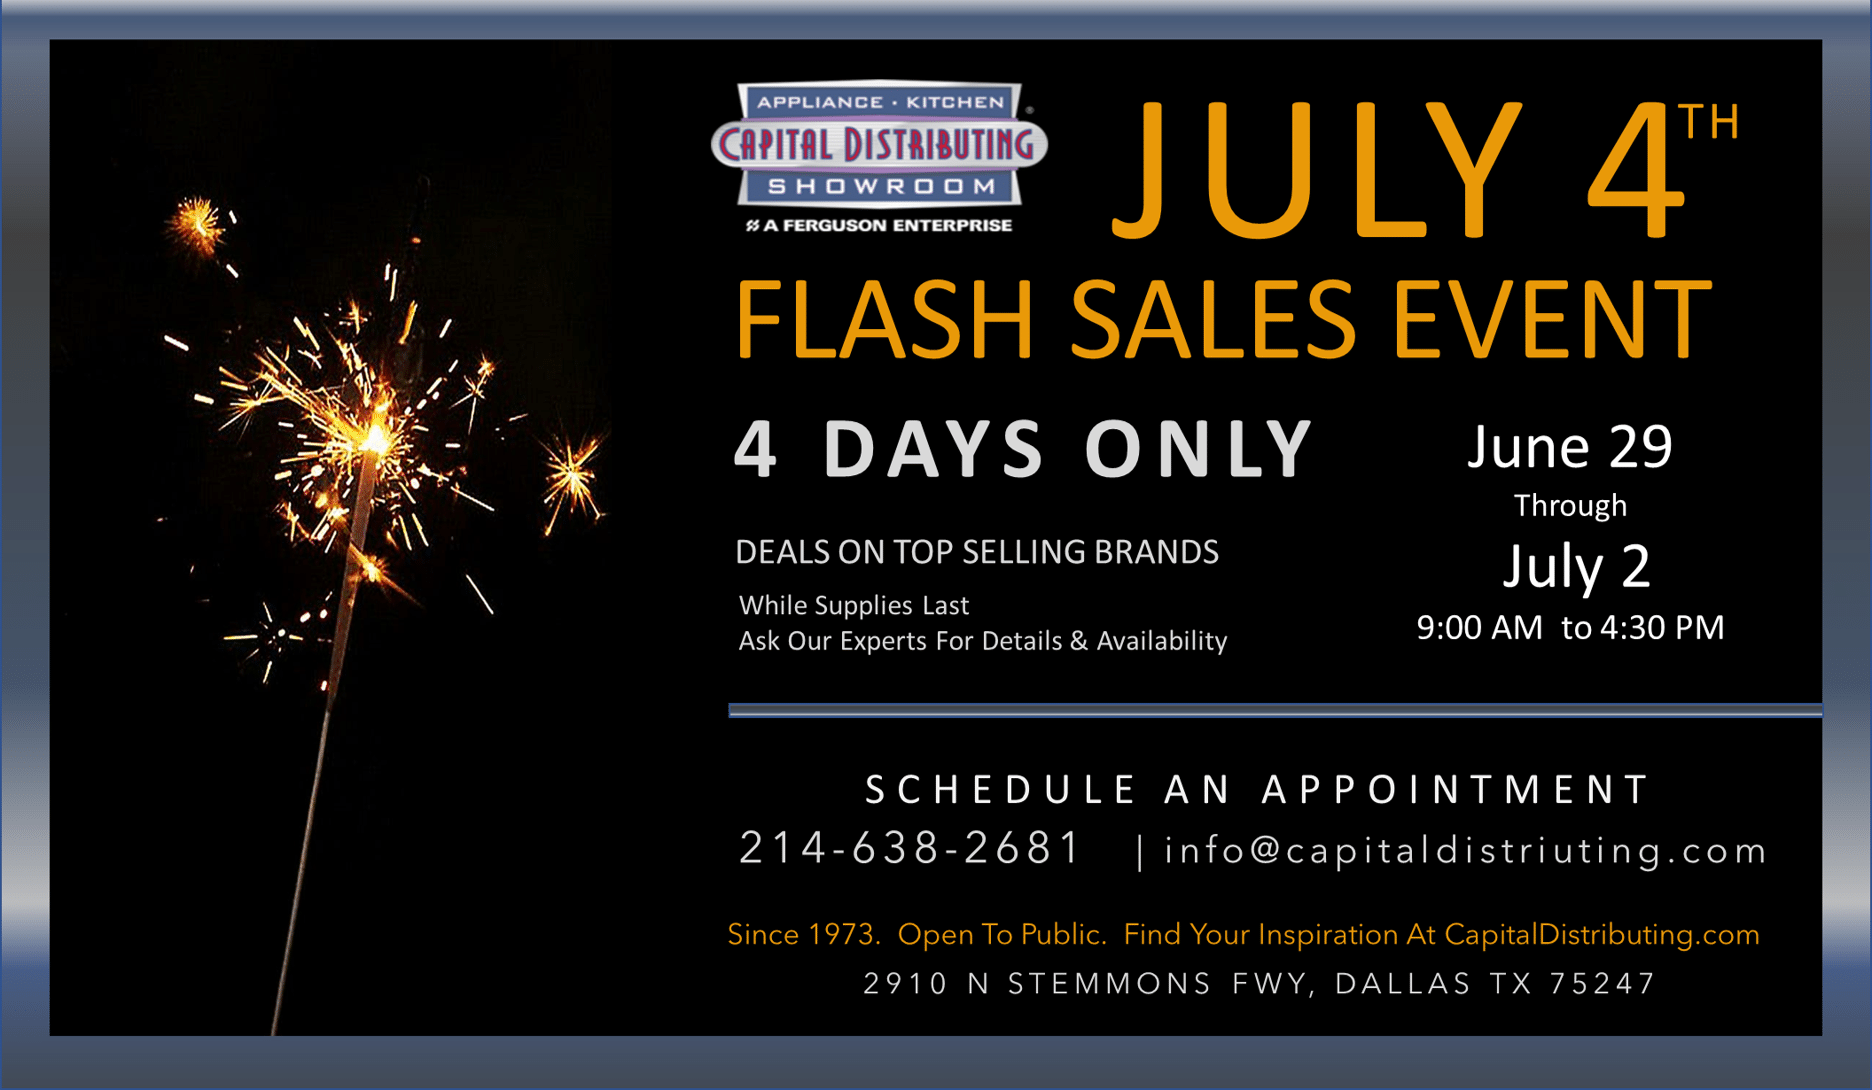 Capital Distributing July 4th Flash Sales Event